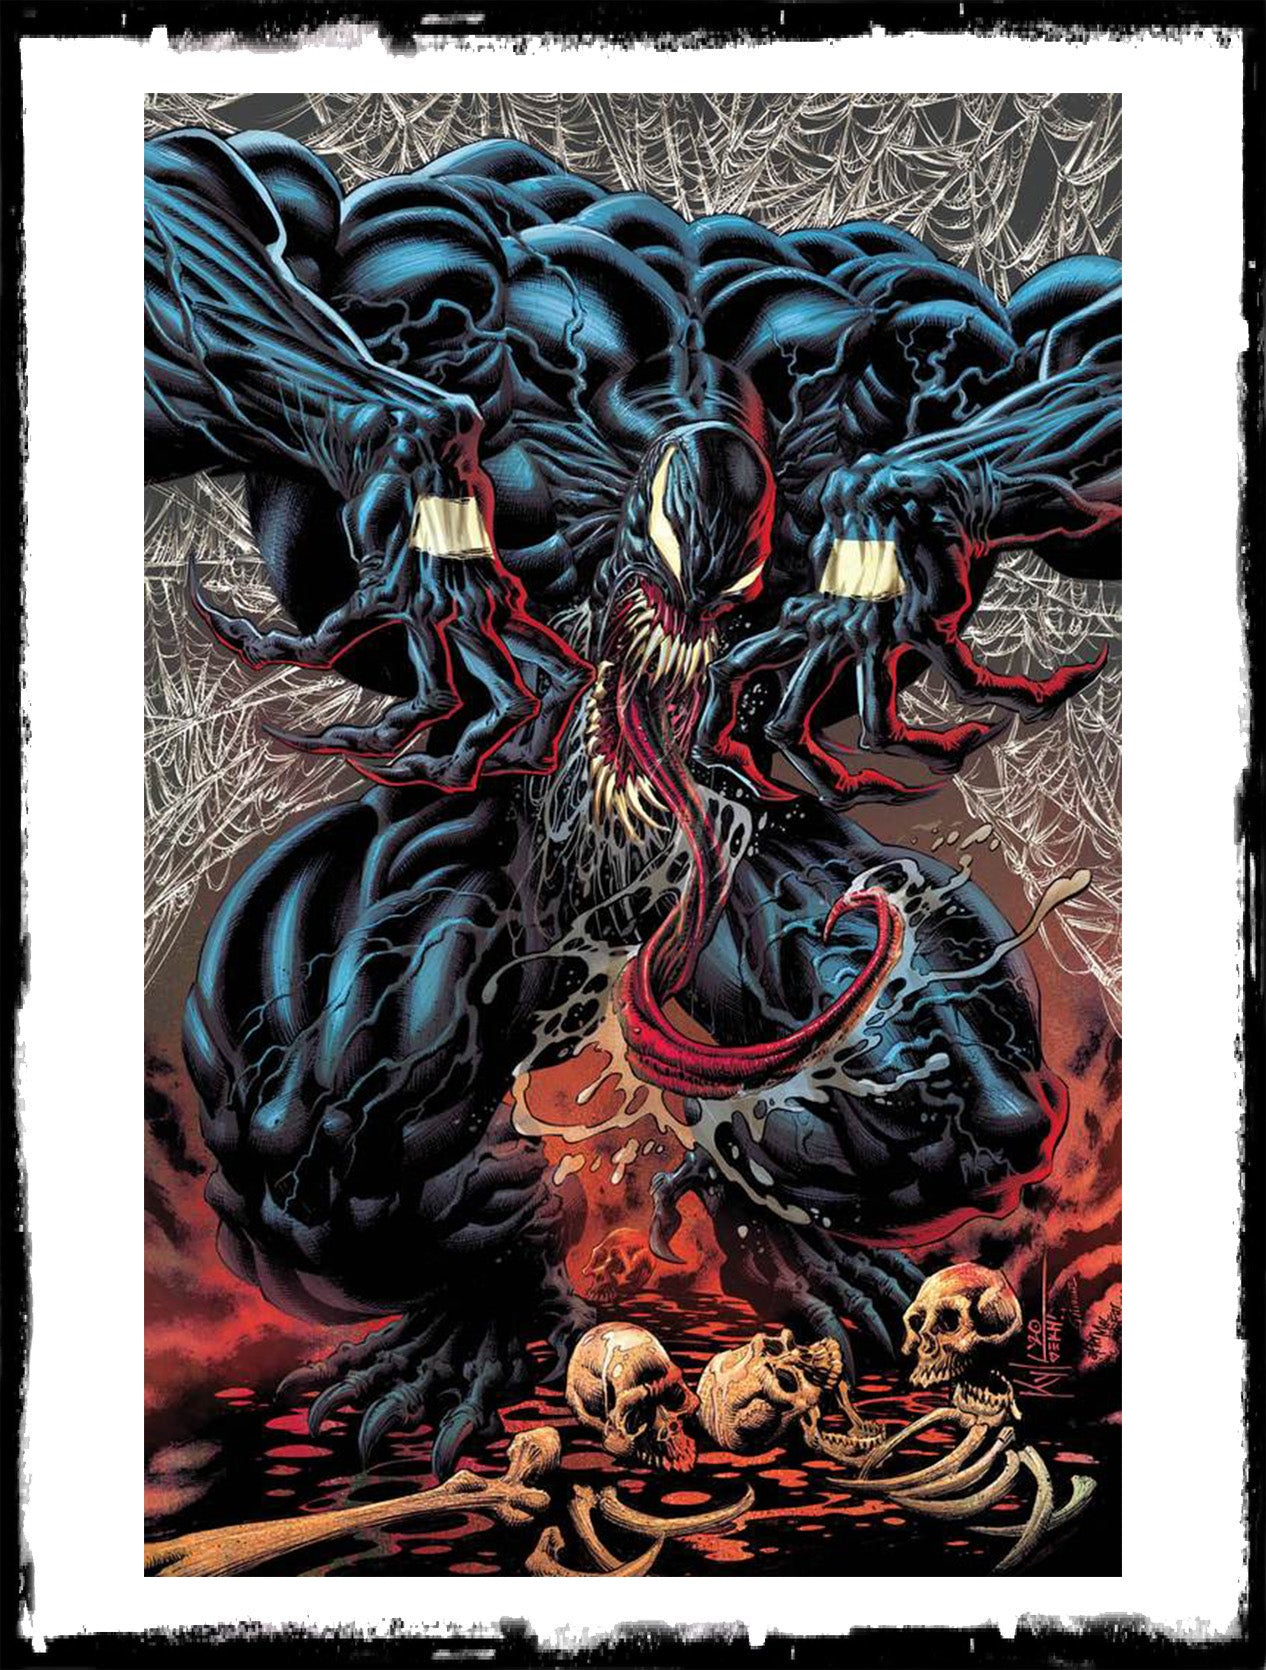 VENOM - #31 KYLE HOTZ VIRGIN VARIANT EXCLUSIVE - LTD TO 1000 (2020 - NM)